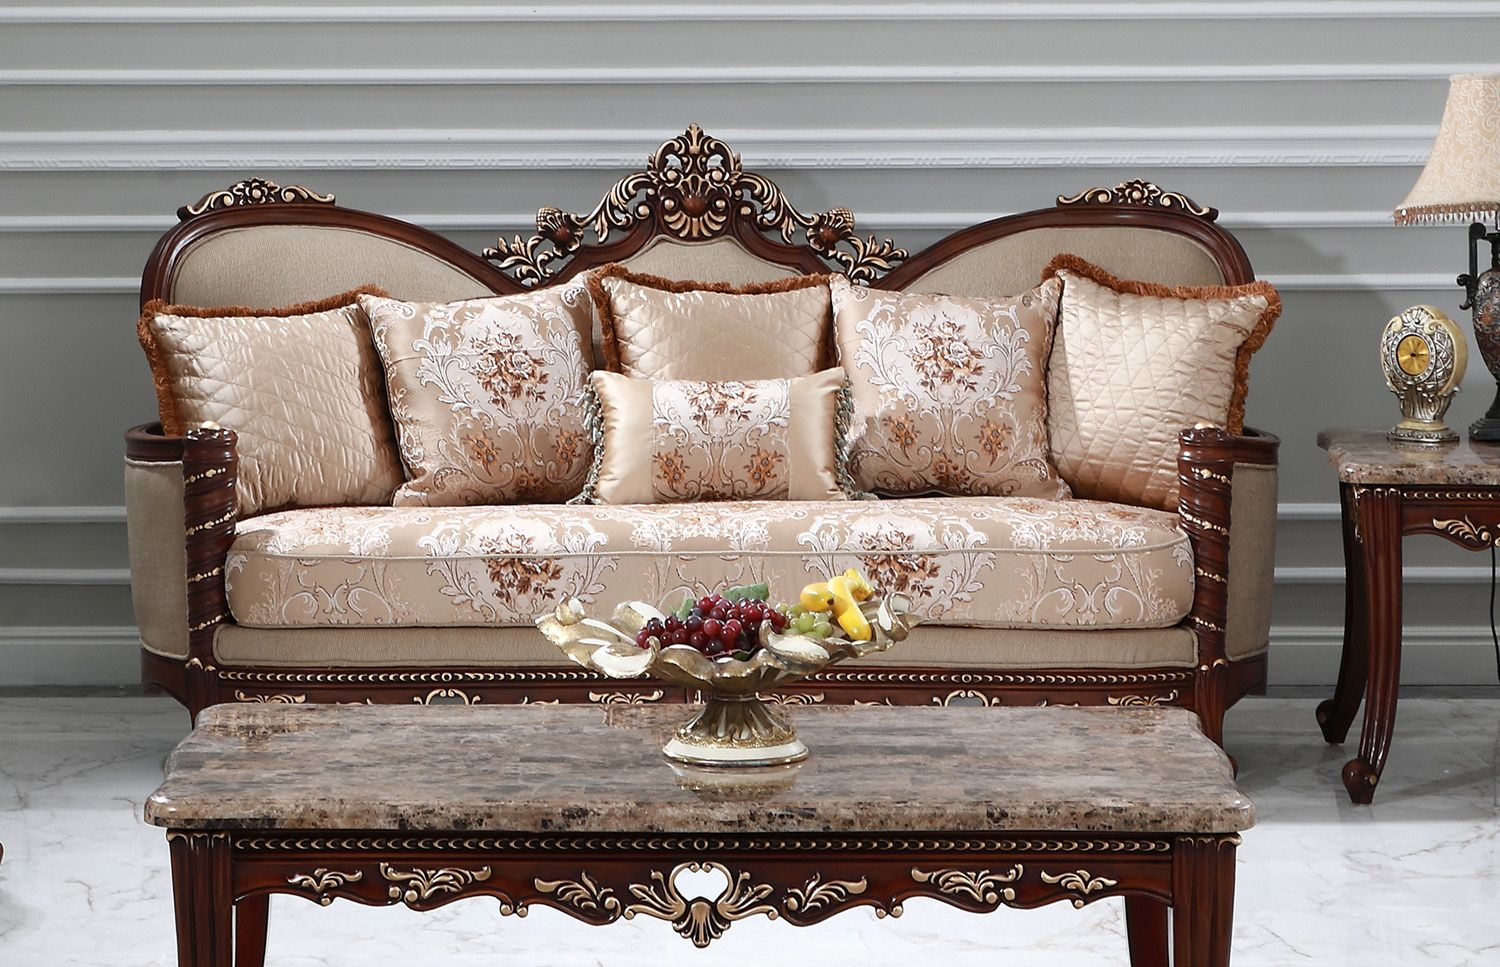 Azalea Victorian Sofa & Loveseat Beige Floral Print Carved Throughout Floral Sofas And Chairs (View 6 of 15)